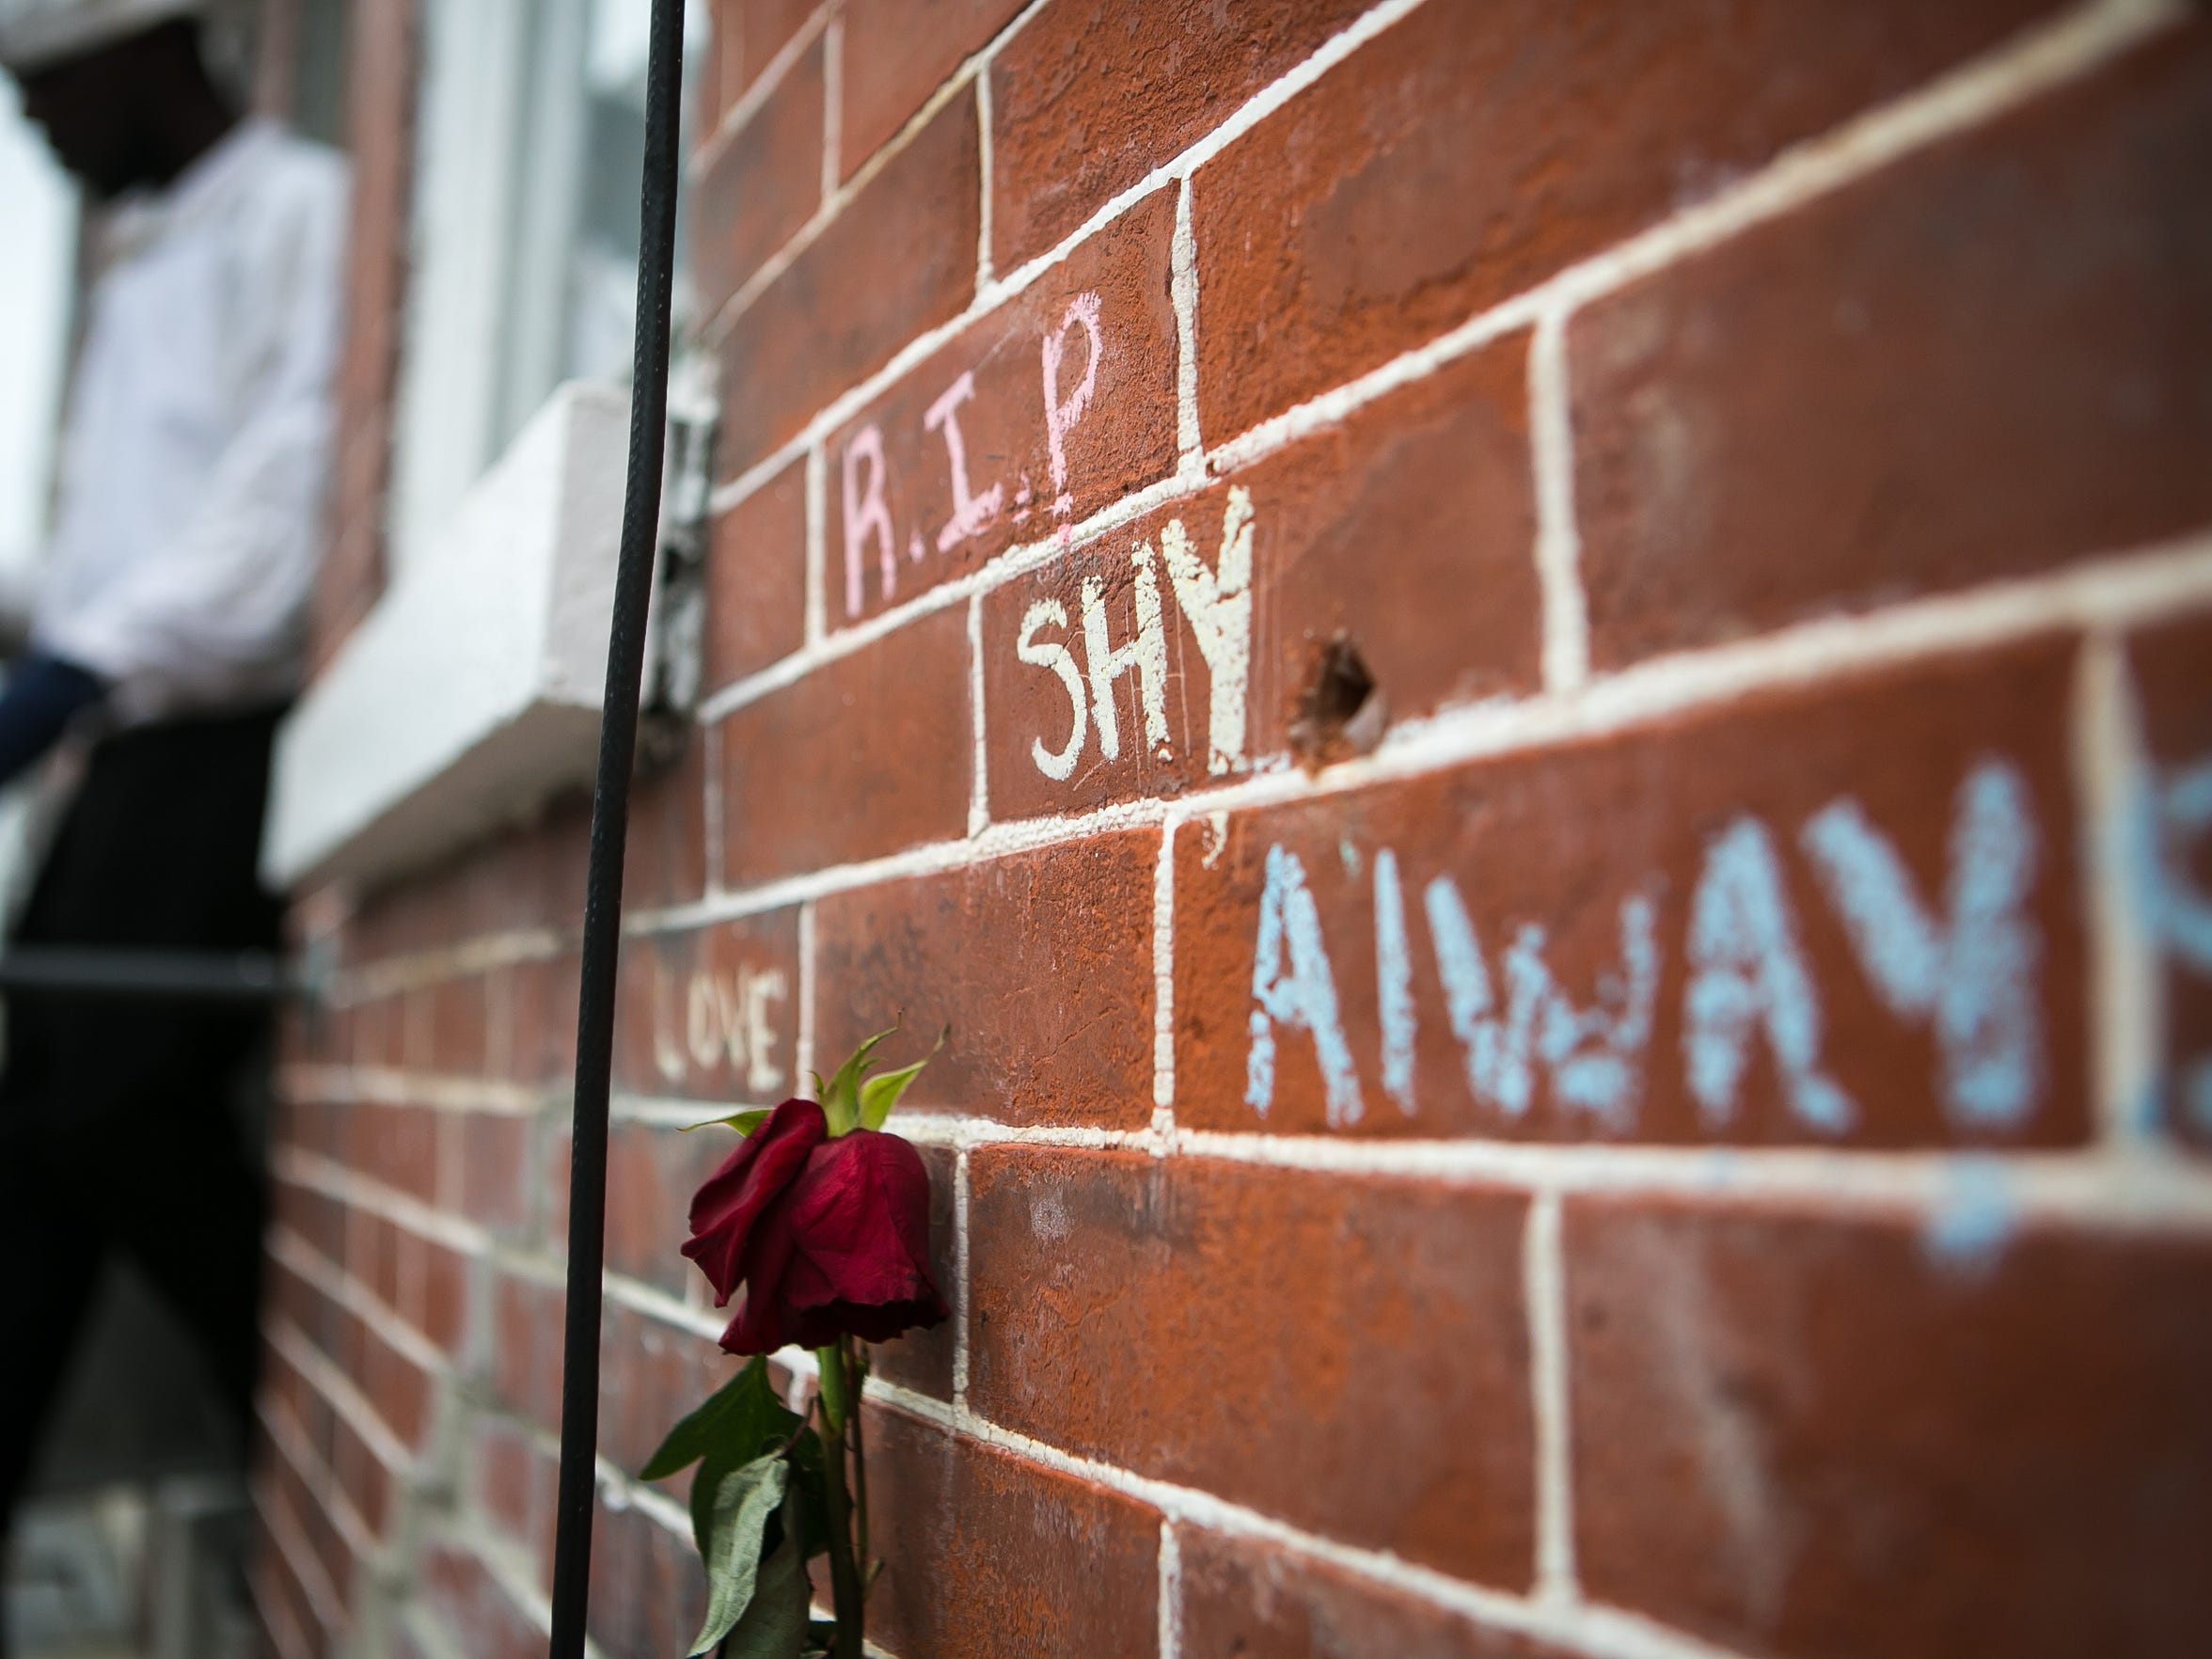 A rose and messages are left on the front brick wall